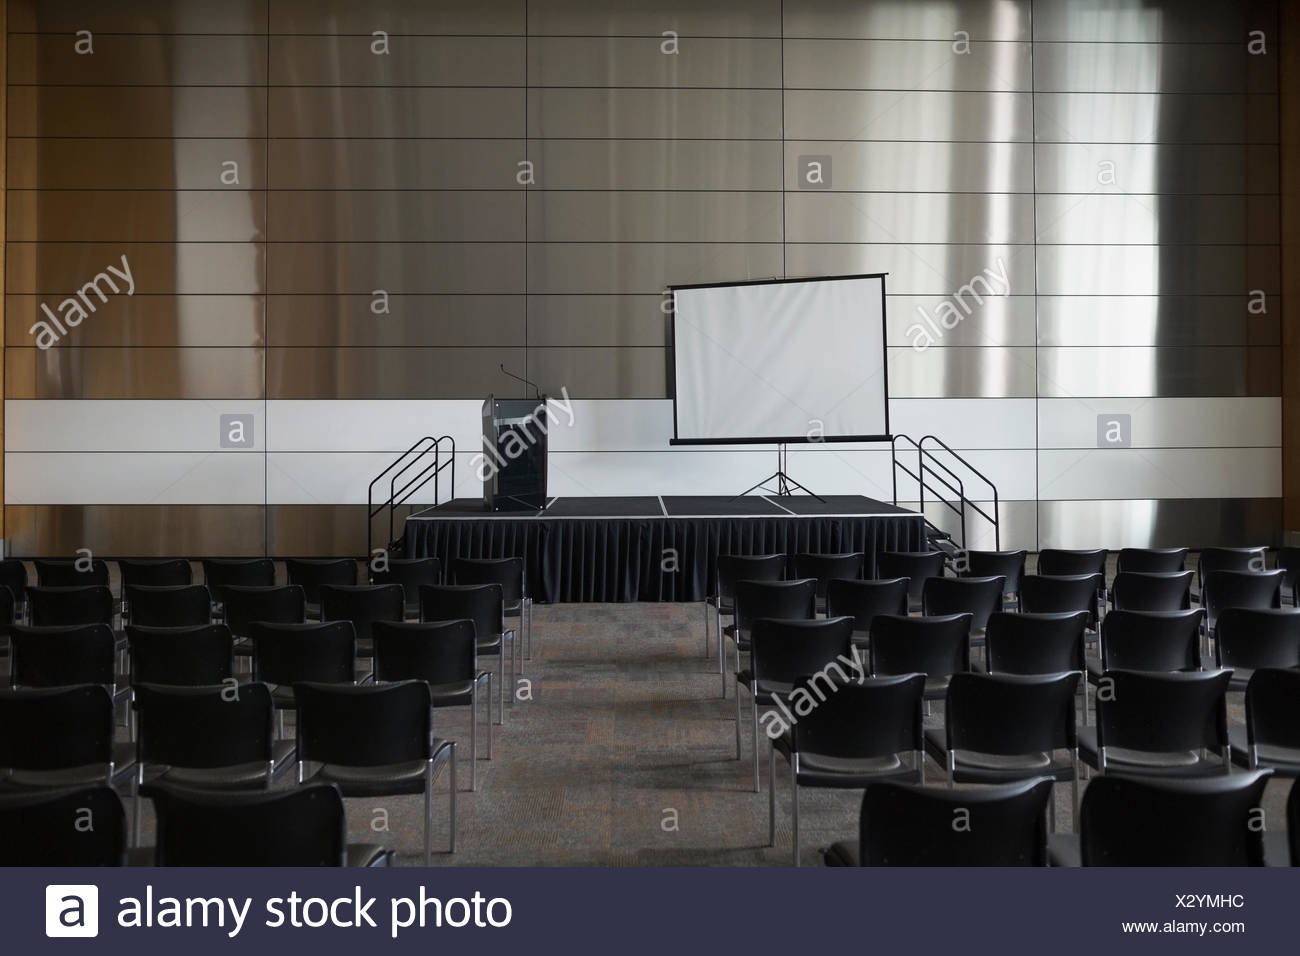 Chairs and projection screen in empty auditorium - Stock Image